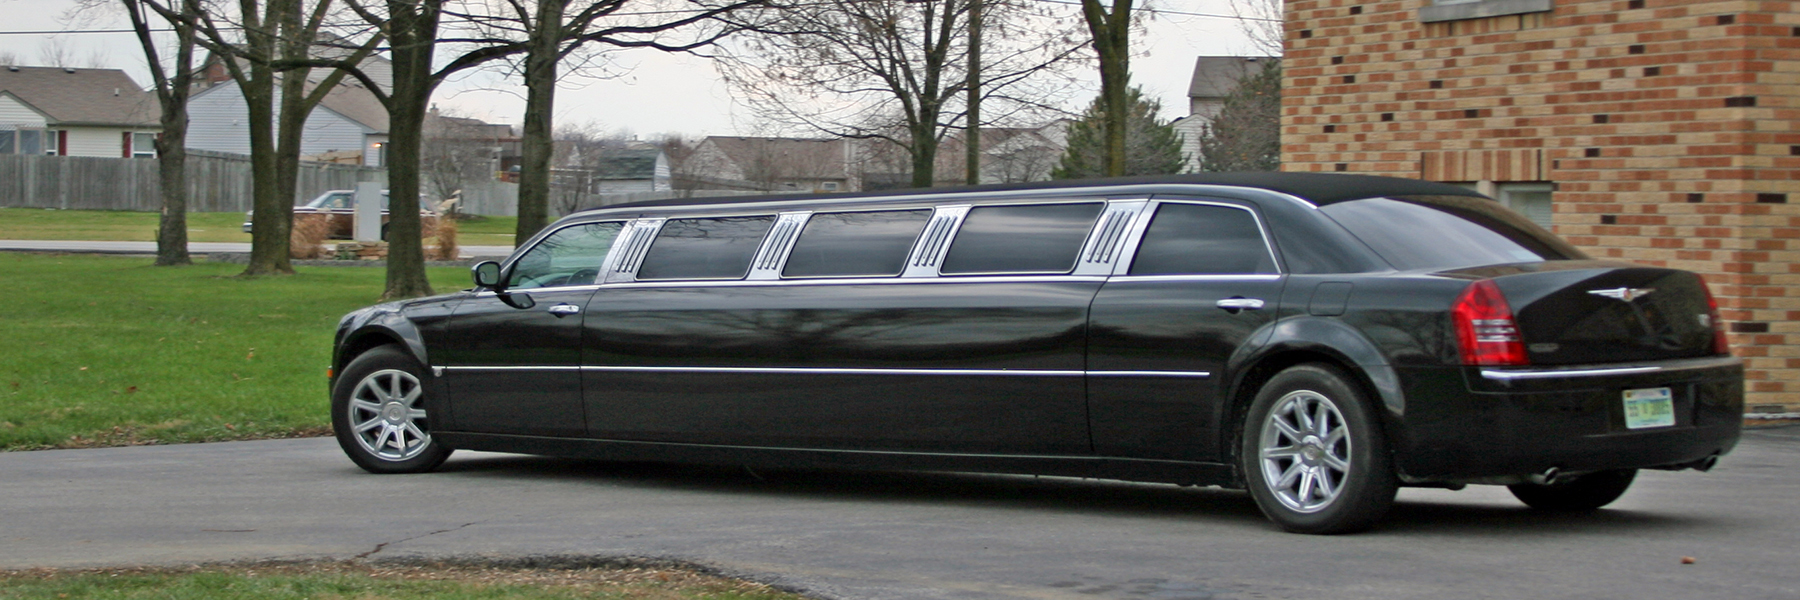 Making Sure Your Cats Are Fed During a Limo Ride